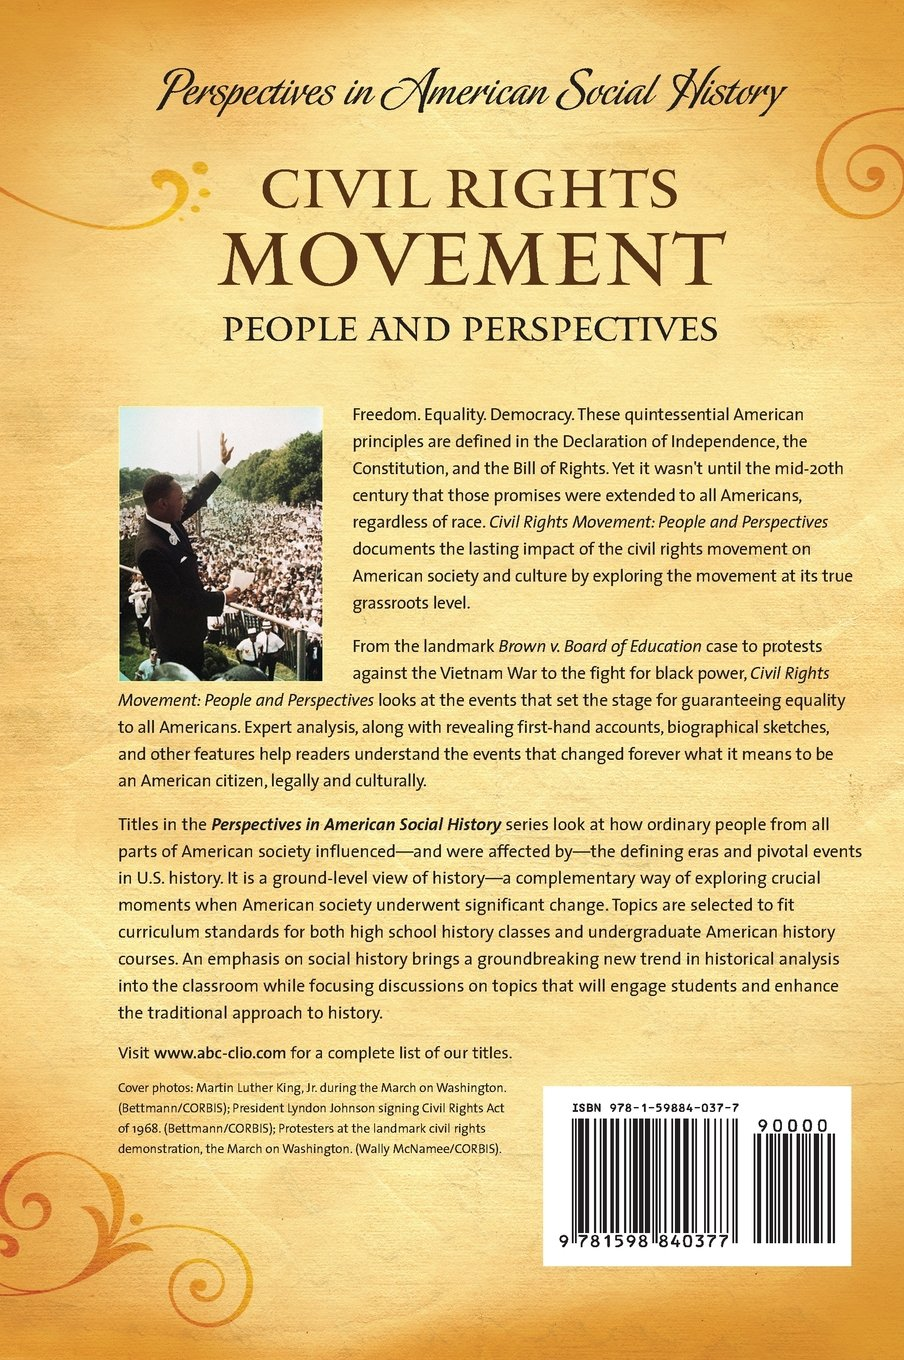 civil rights movement people and perspectives perspectives in civil rights movement people and perspectives perspectives in american social history series amazon co uk michael ezra books